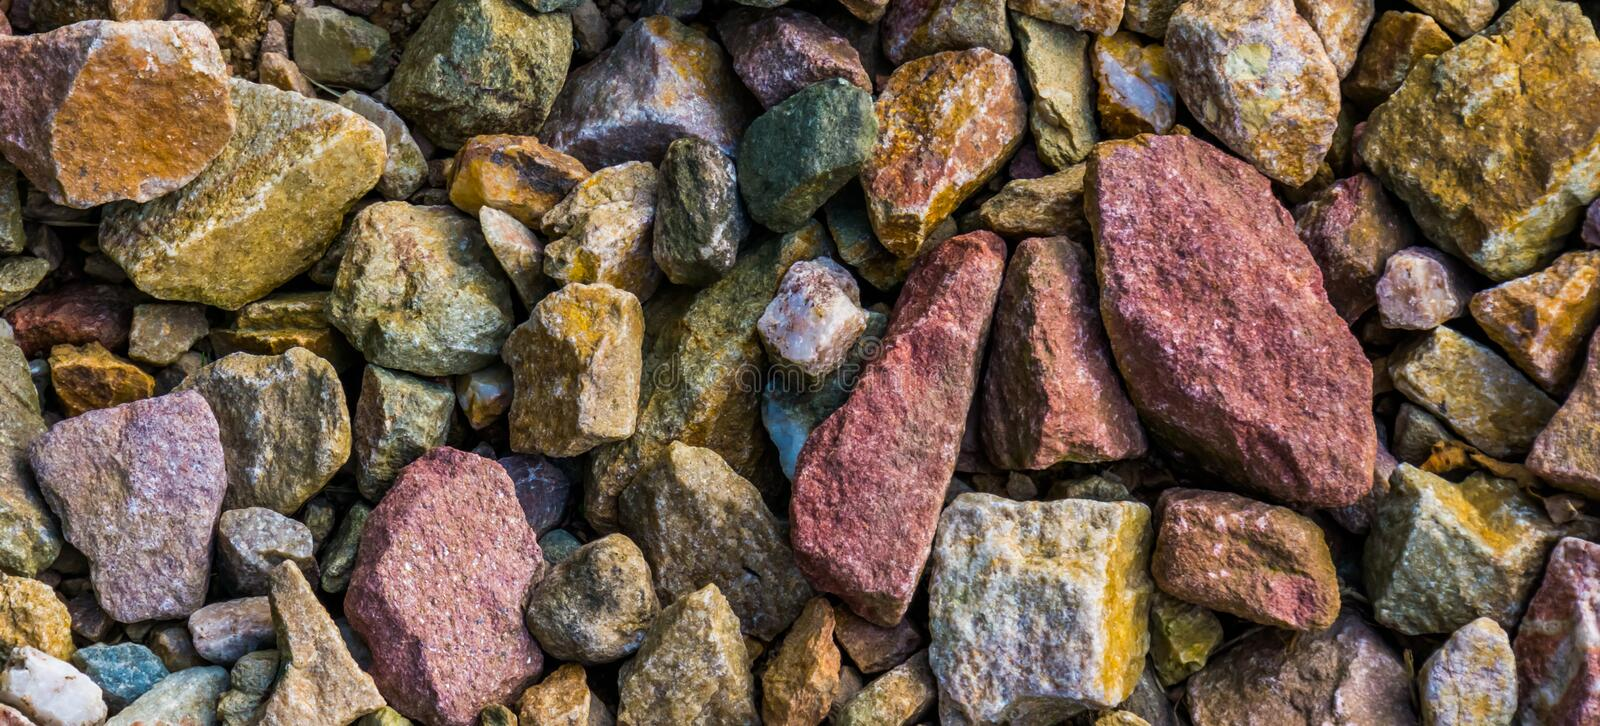 Macro closeup of gravel stones in diverse colors, rock pattern background. A macro closeup of gravel stones in diverse colors, rock pattern background royalty free stock photo